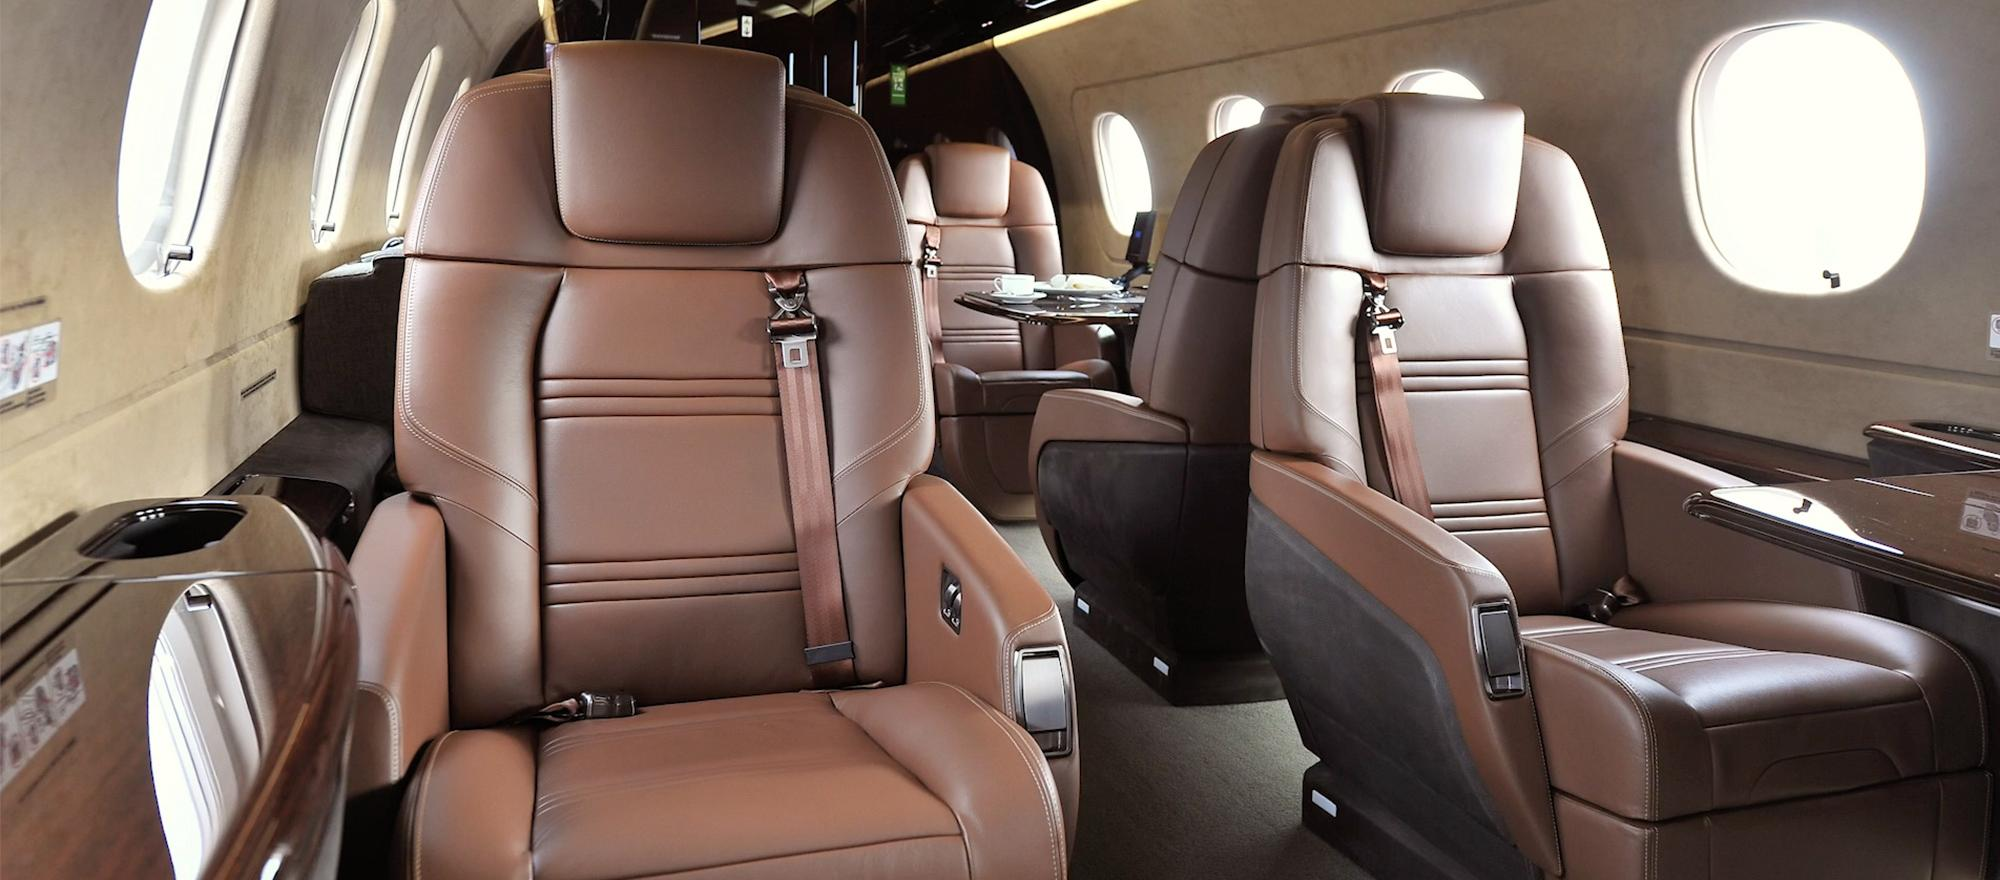 Embraer Debuts Legacy 450 and 500 Seats